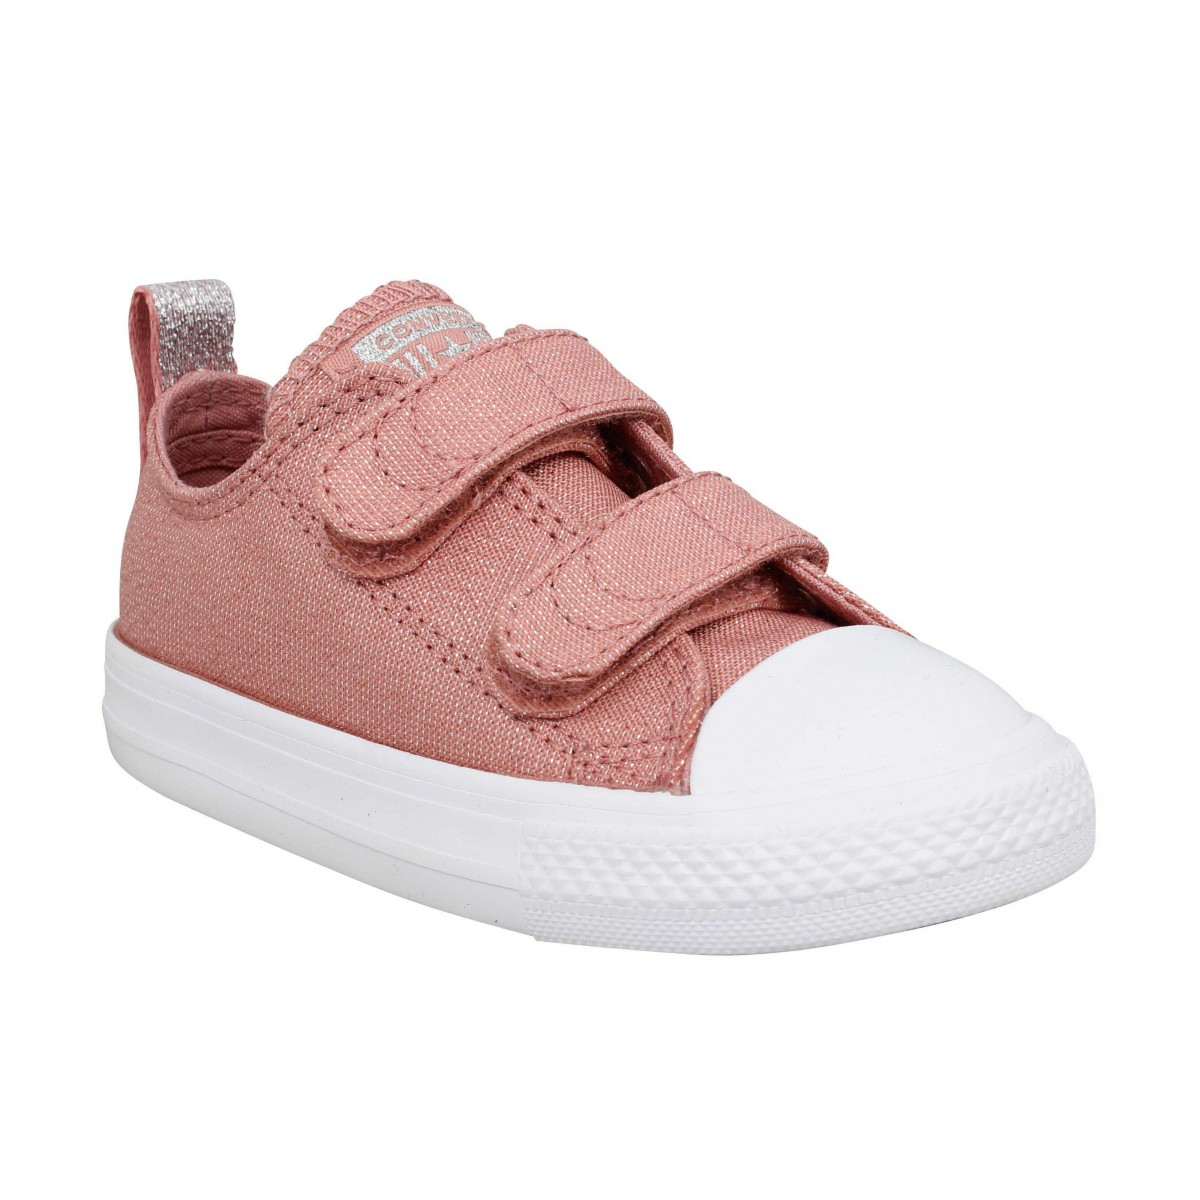 Baskets CONVERSE Chuck Taylor All Star 2V toile Enfant Rose